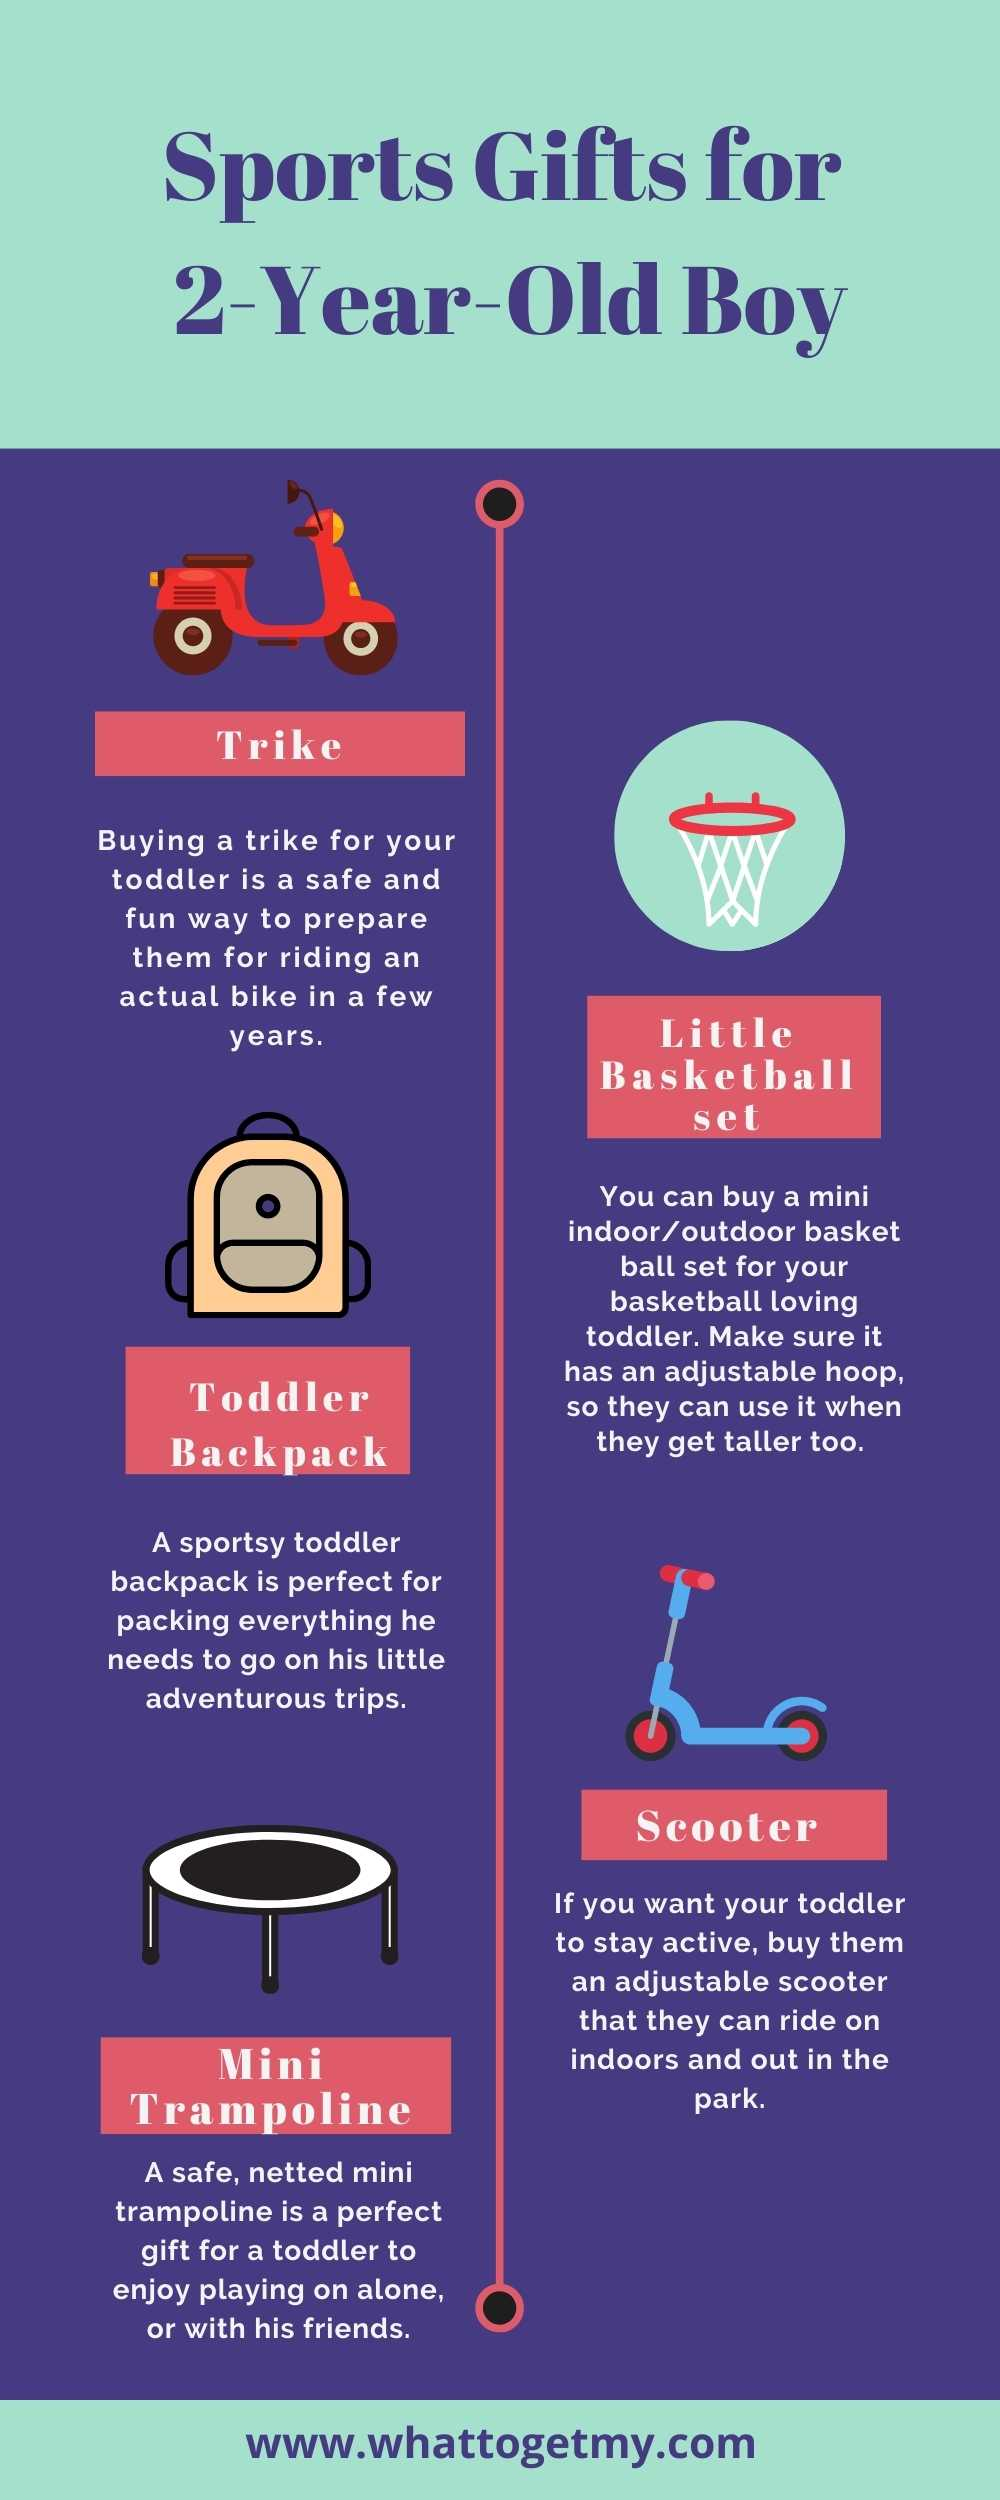 Sports Gifts for 2-Year-Old Boy